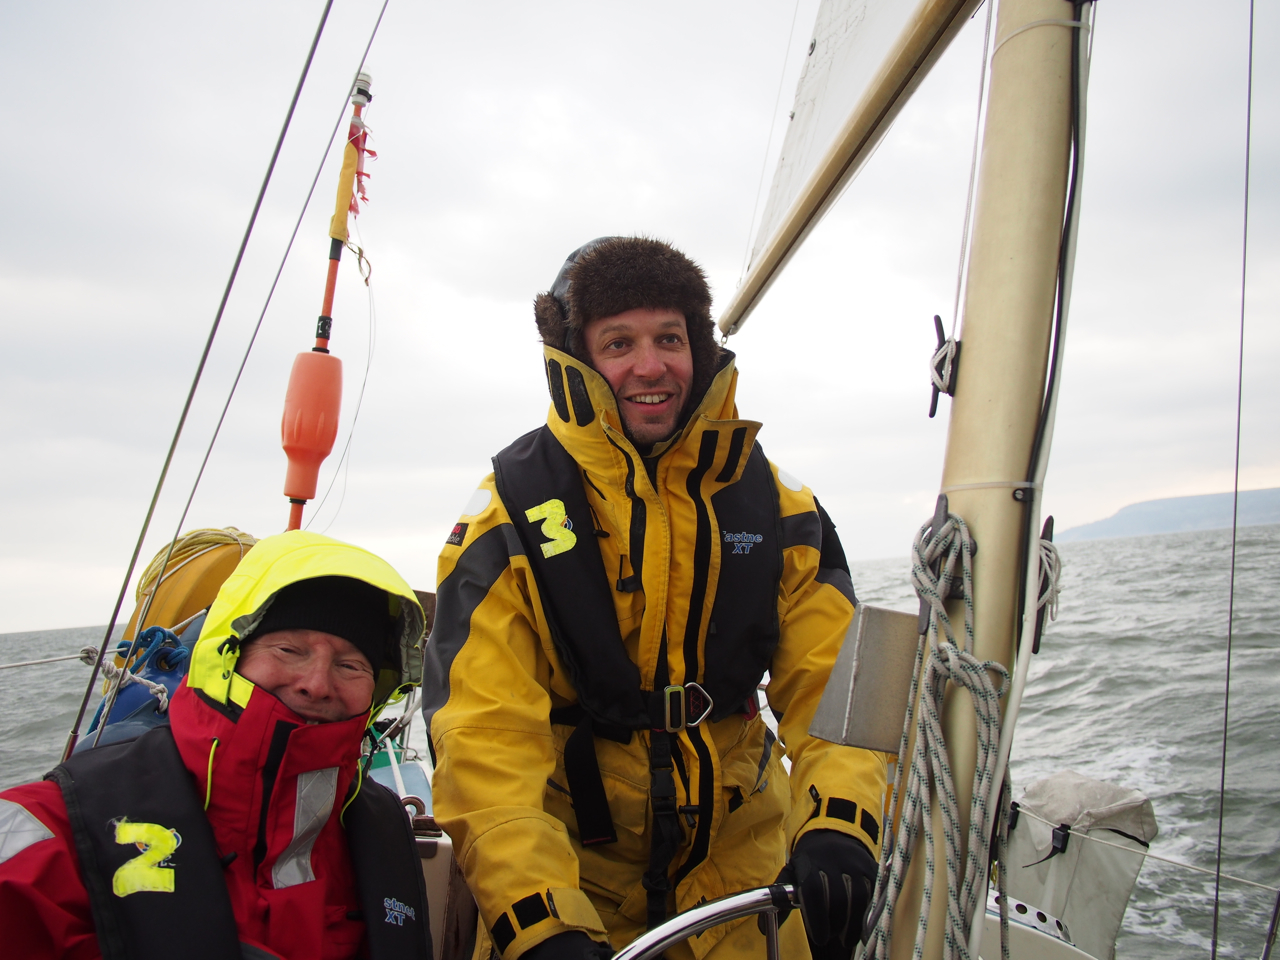 RYA Coastal Skipper sailing course Solent Southampton Chichester